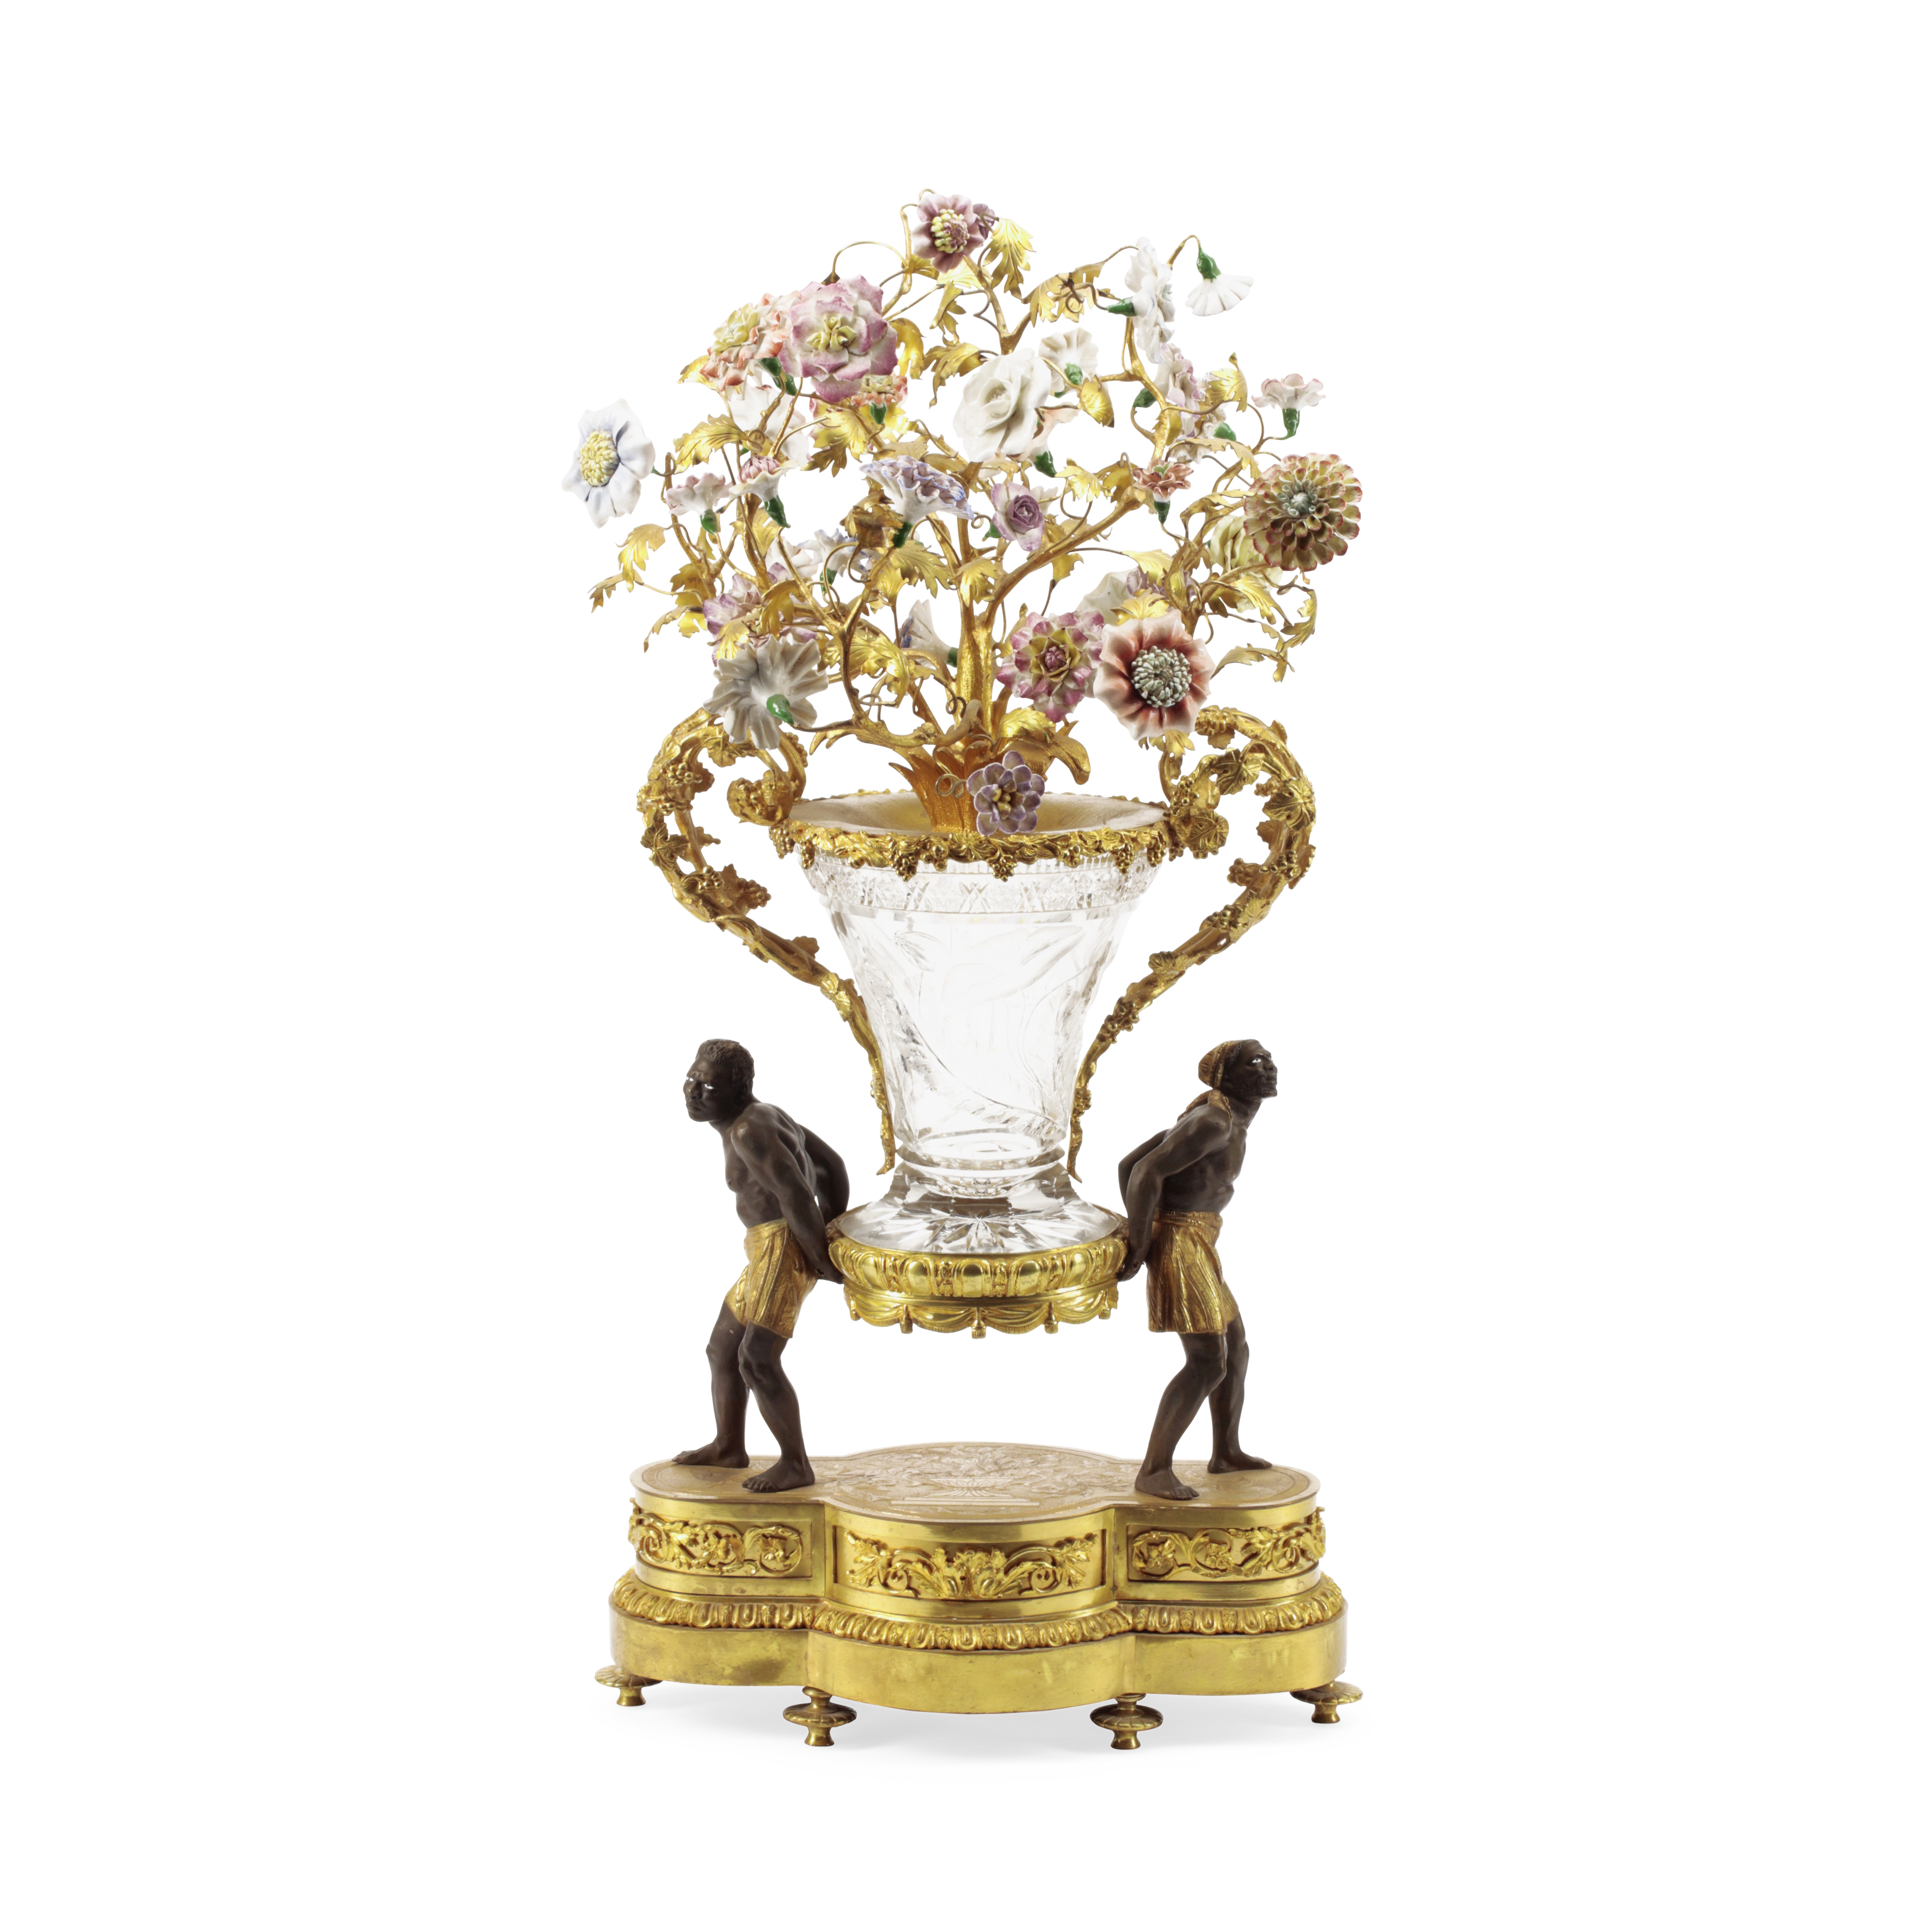 Lot 227 - A French Style Patinated and Gilt Bronze, Porcelain and Engraved Glass Centerpiece